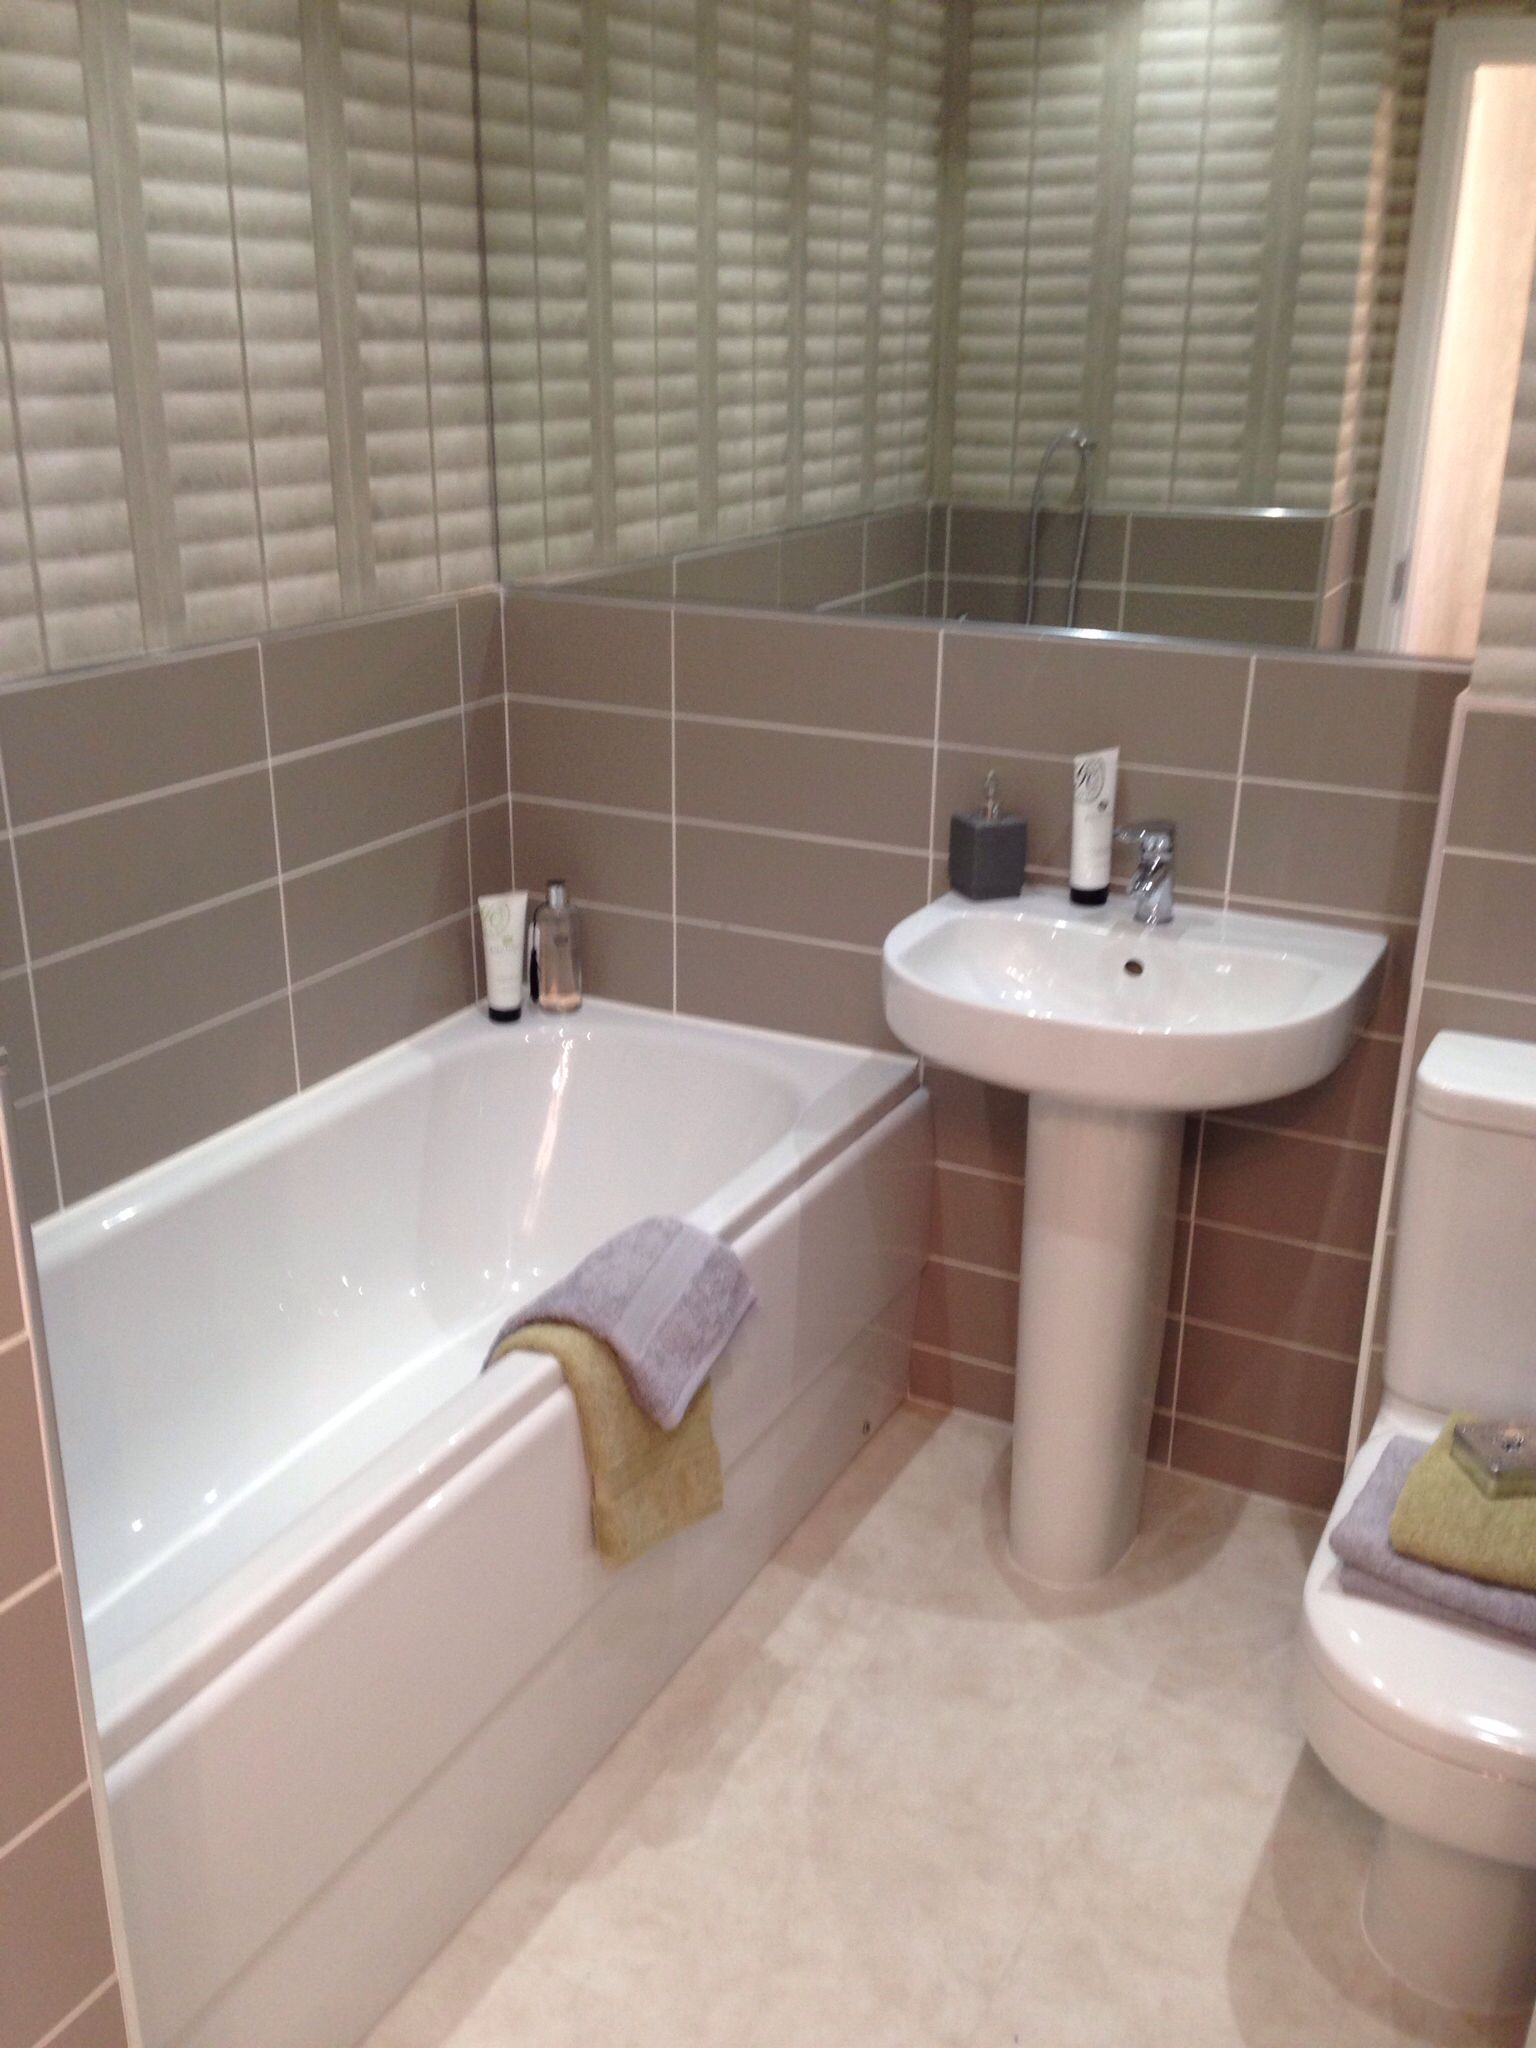 Cream Tiles Bathroom Ideas Part - 20: Show Home Bathroom. Barratt Homes. Brown And Cream Tiles.